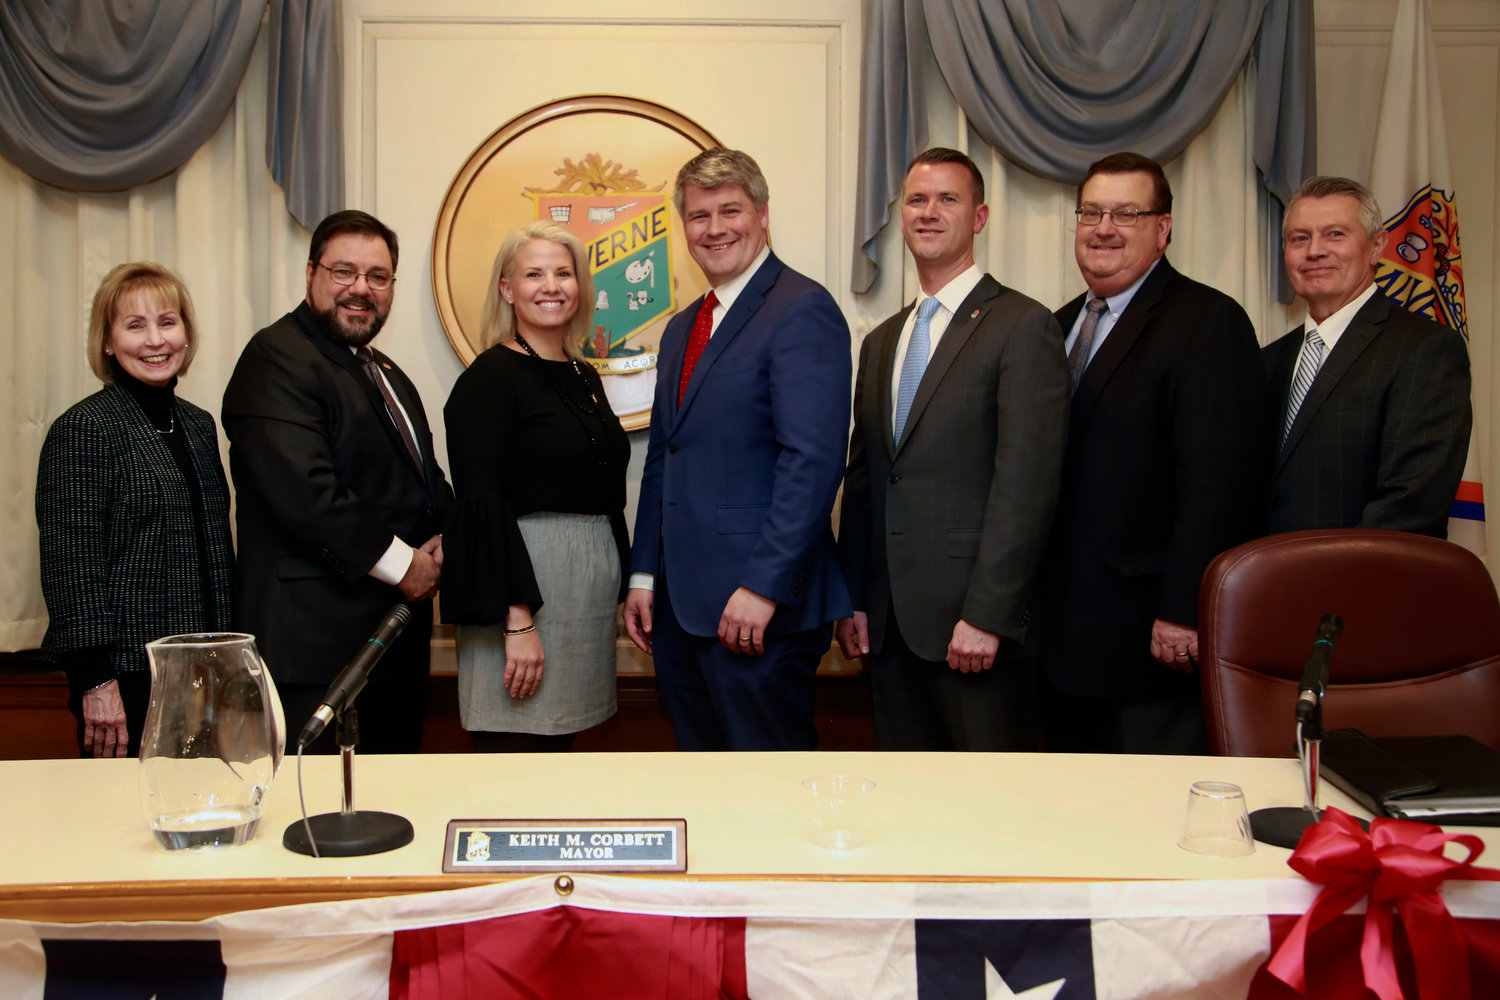 Malverne's village board, from left: Village Clerk Terry Emmel, Trustees Perry Cuocci and Lauren Touchard, Mayor Keith Corbett, Trustees Tim Sullivan and John O'Brien, and Village Justice James Frankie.